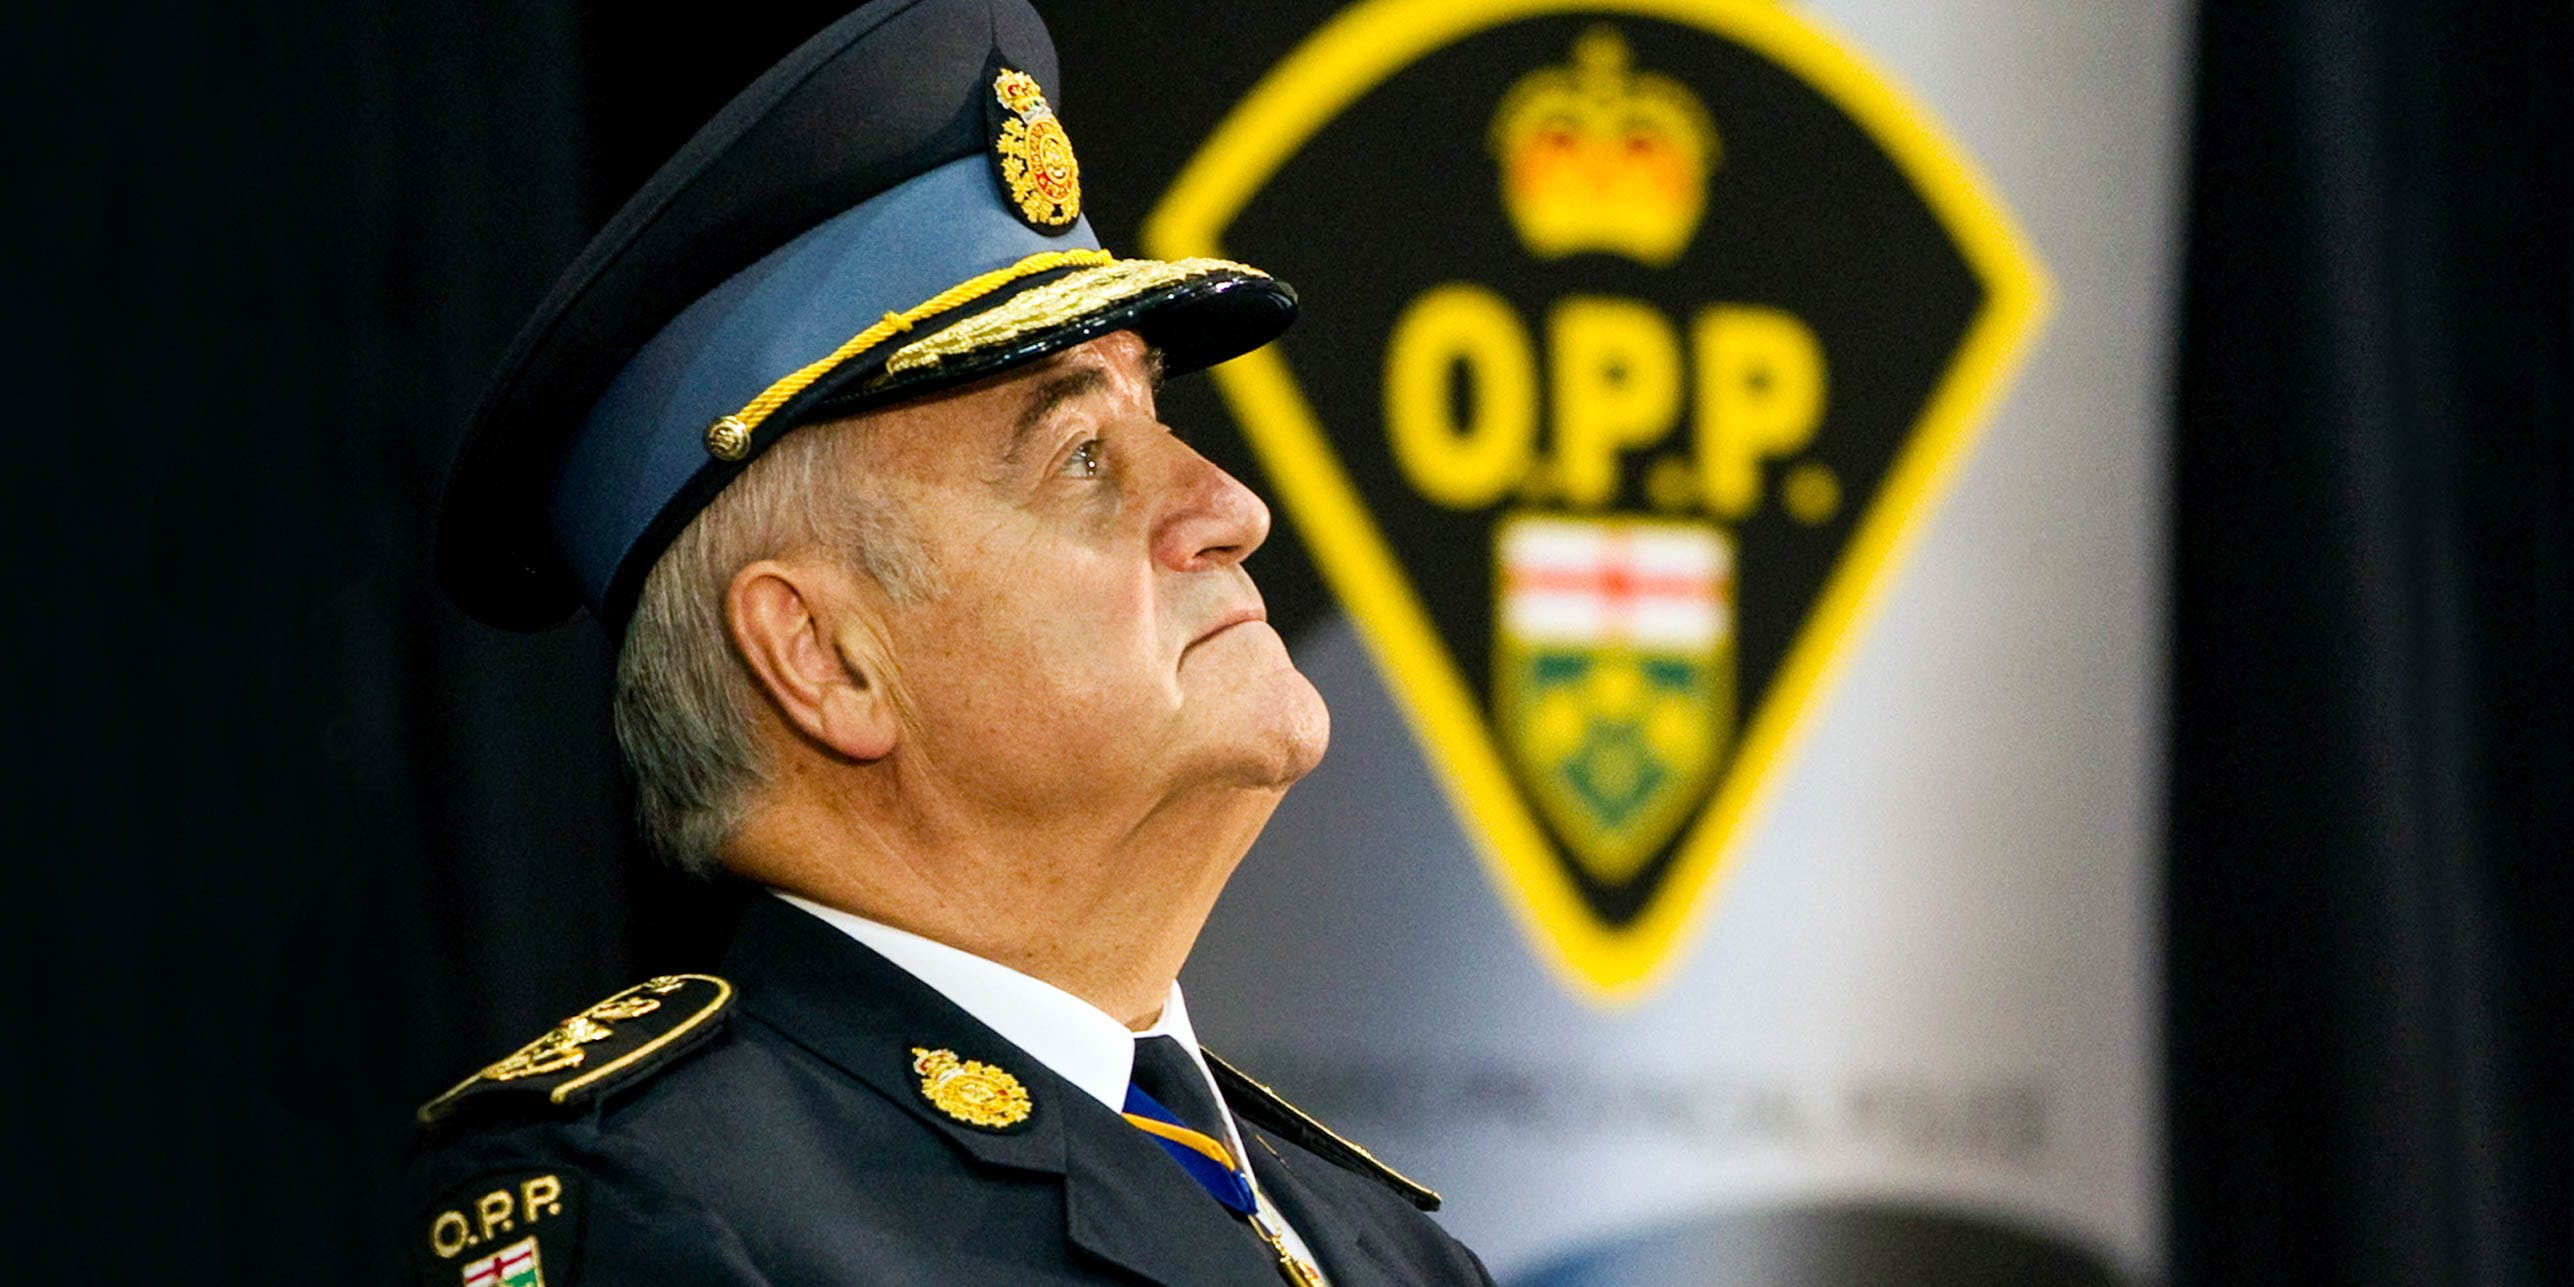 Outgoing OPP Commissioner Julian Fantino during the Ontario police forces change of command ceremony in Toronto. (Photo by Andrew Francis Wallace/Toronto Star via Getty Images)